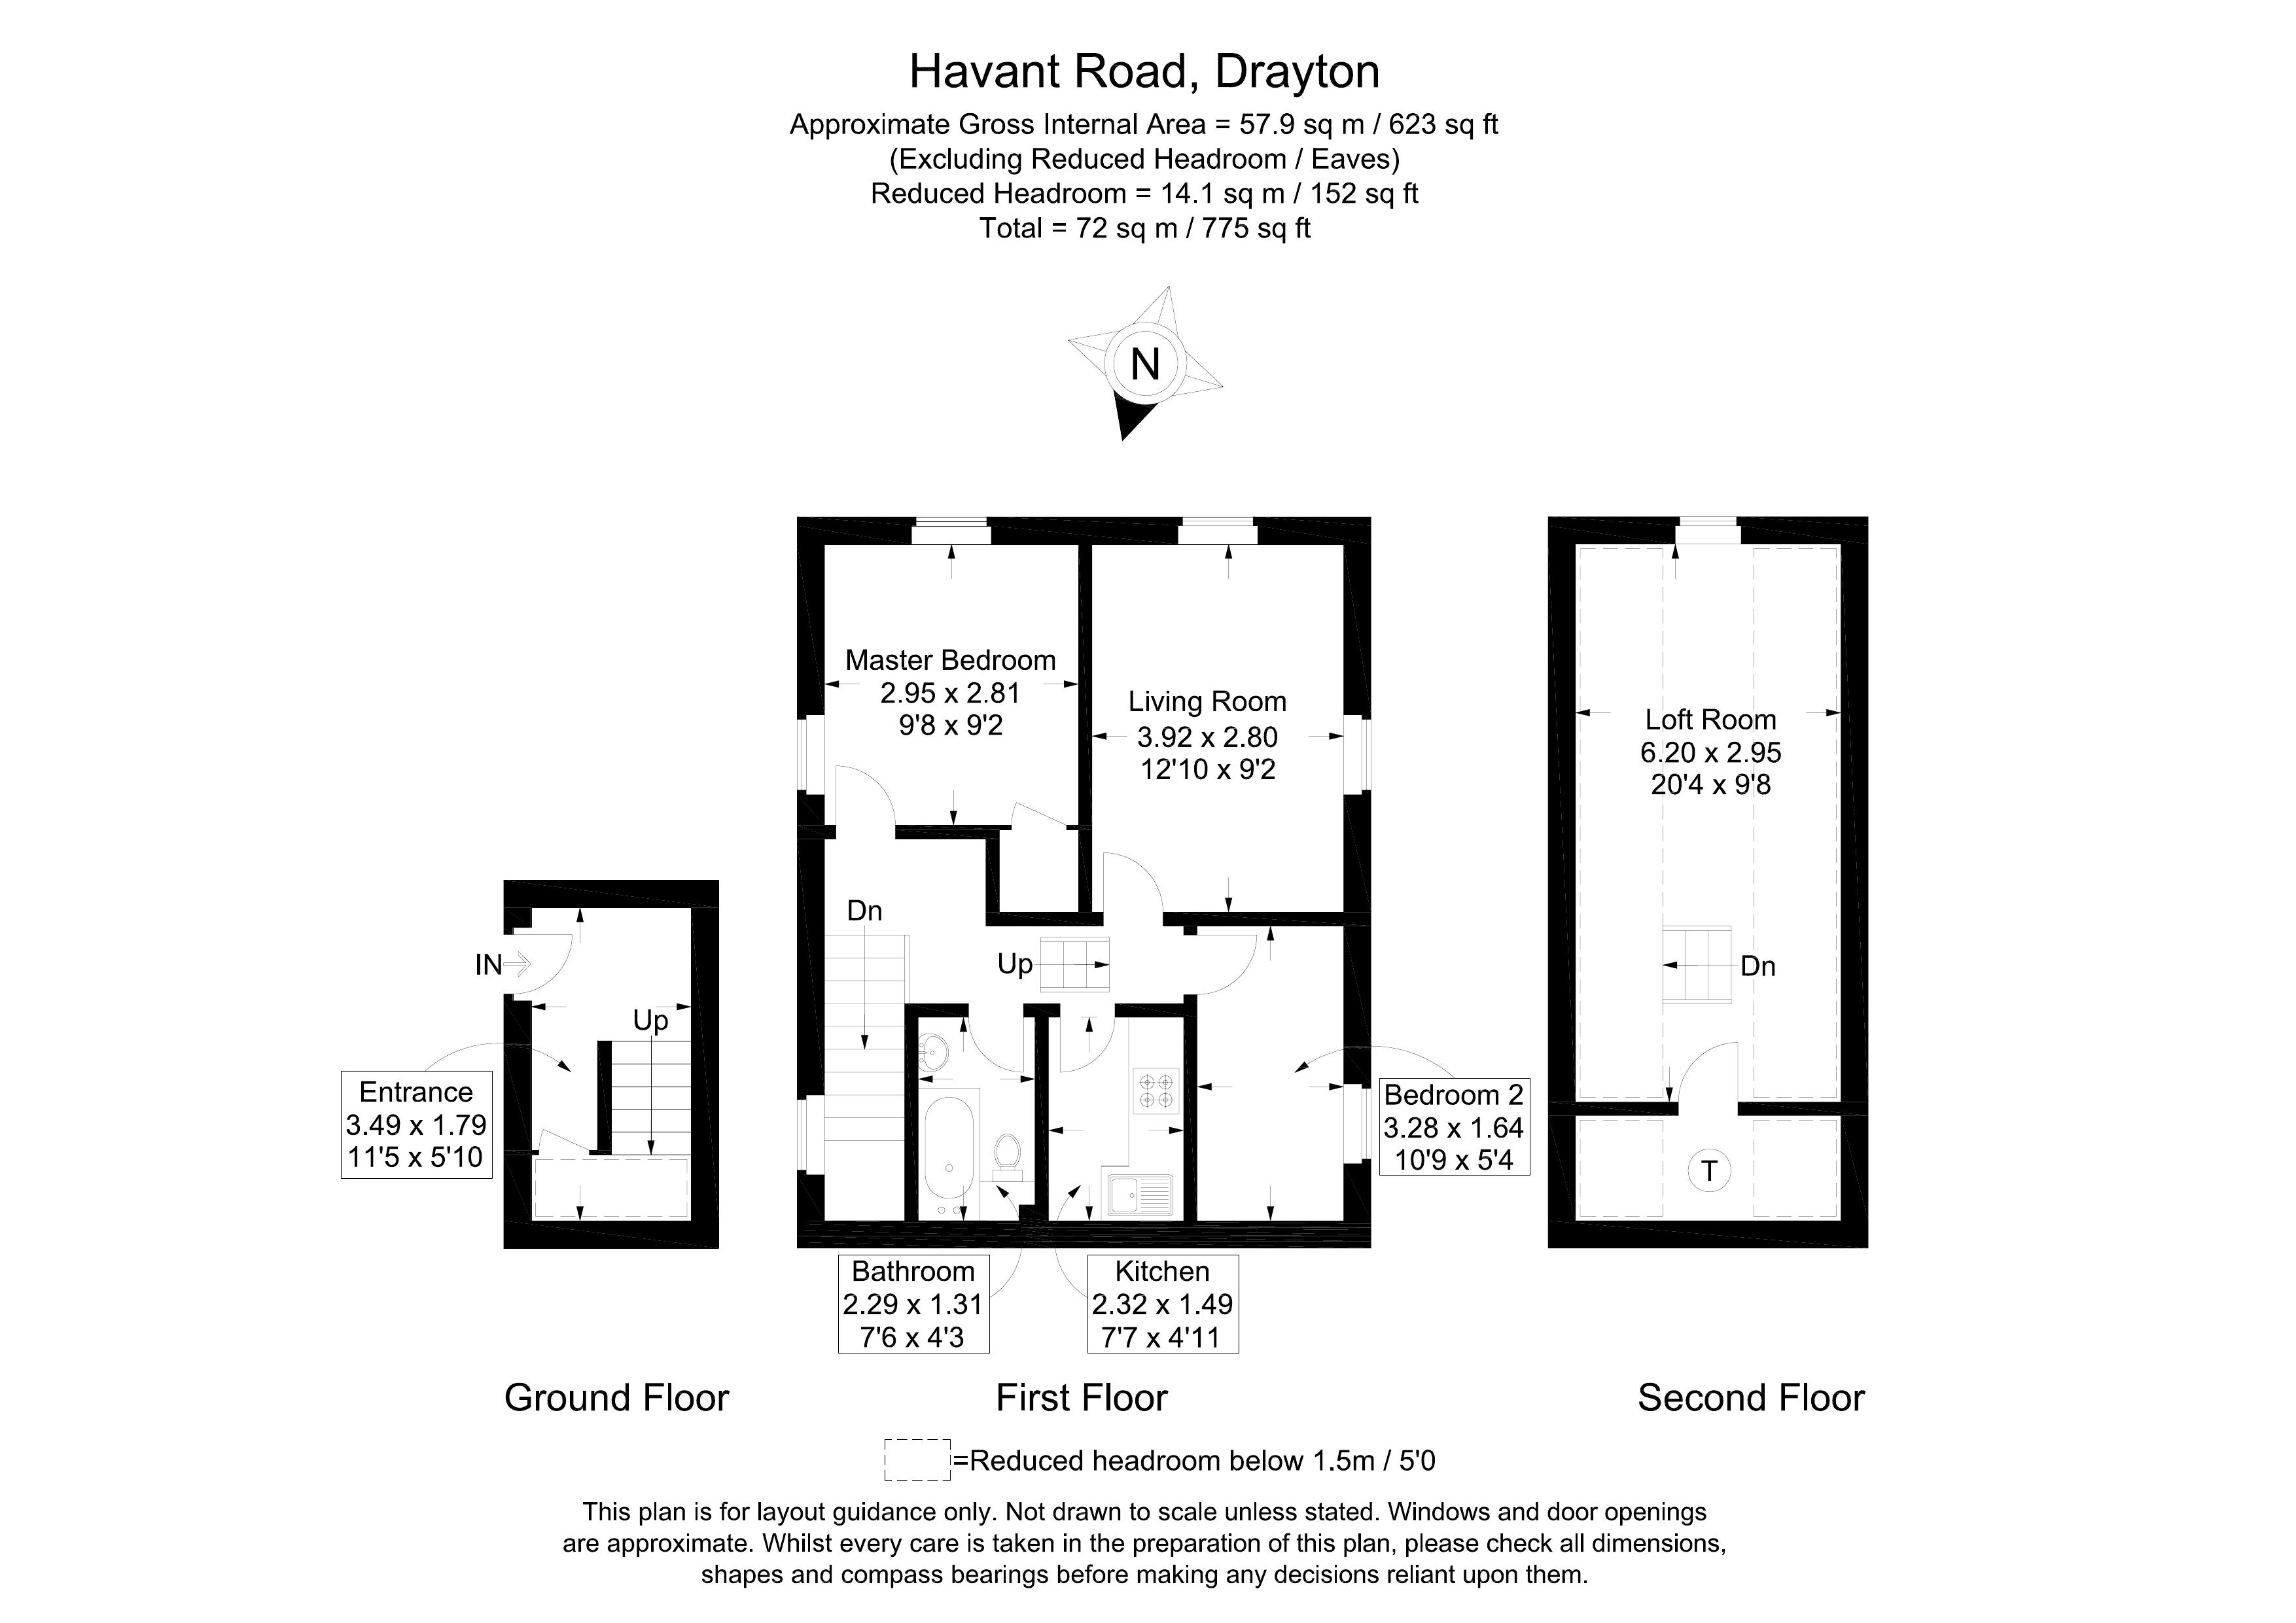 382 Havant Road Farlington